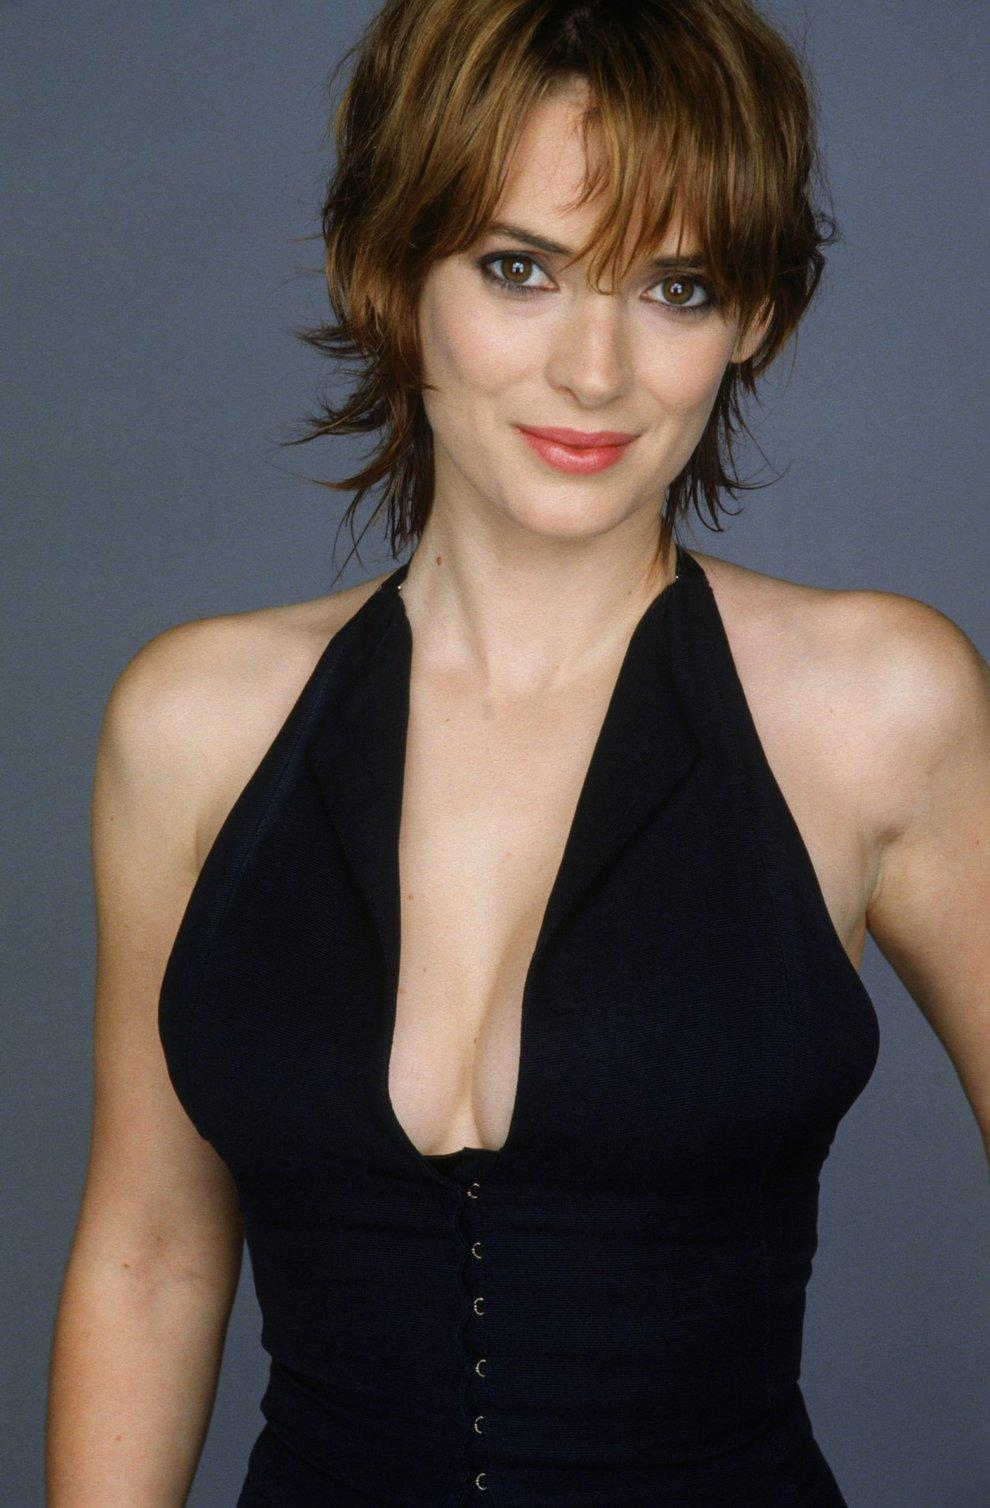 winona ryder - photo #8